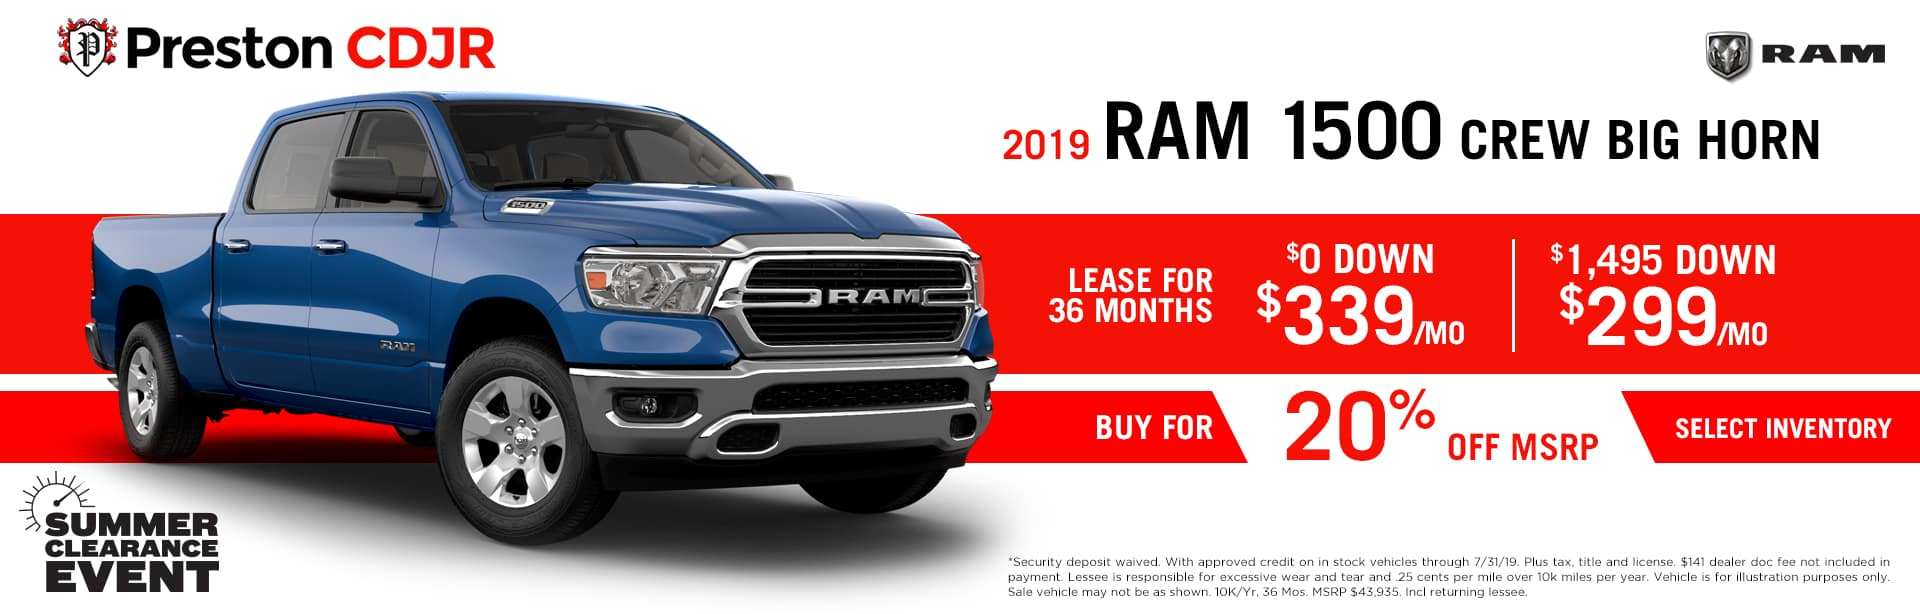 July special on the 2019 RAM 1500